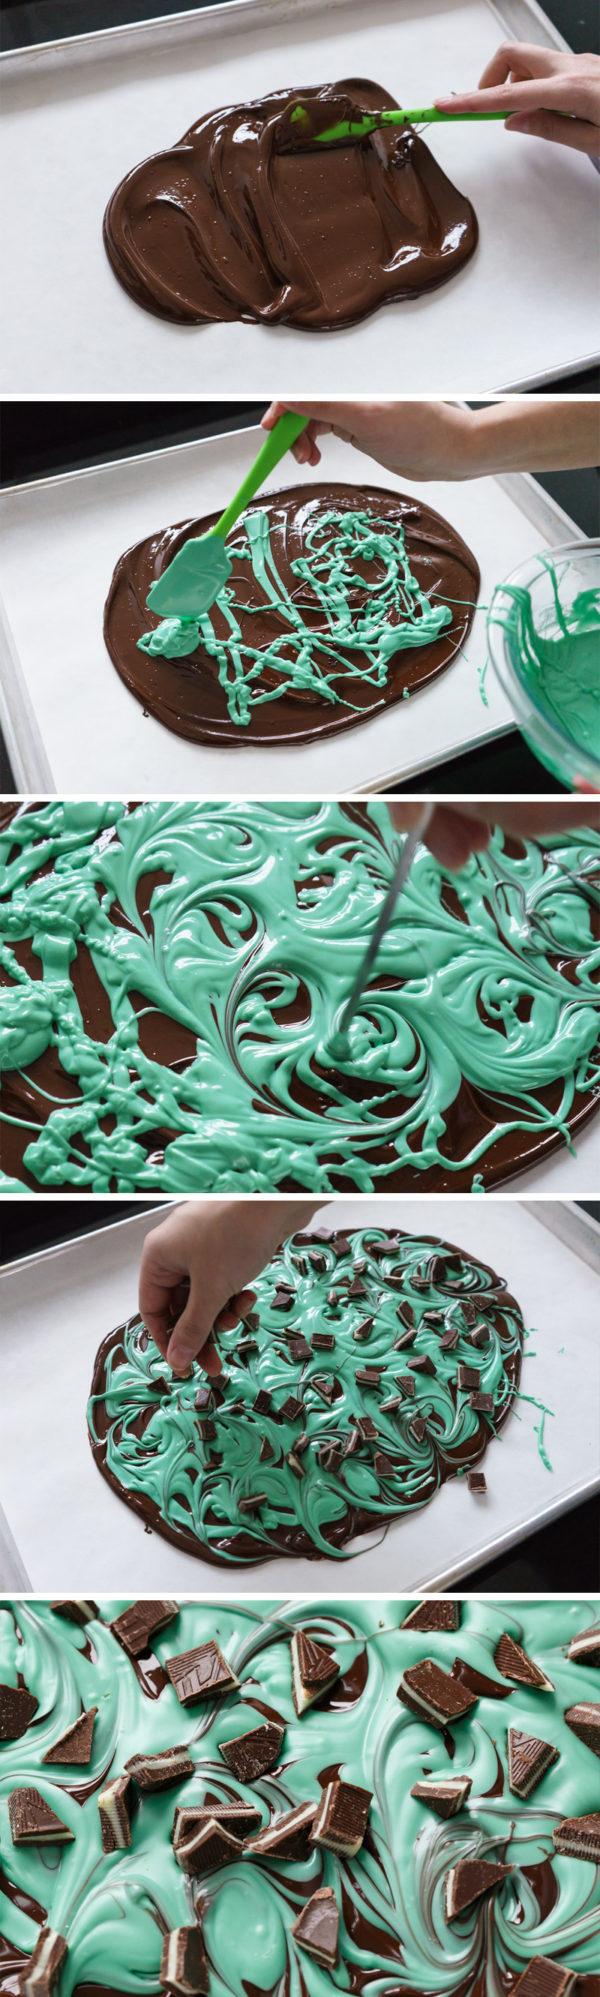 Easy 3-Ingredient Mint Chocolate Swirl Bark